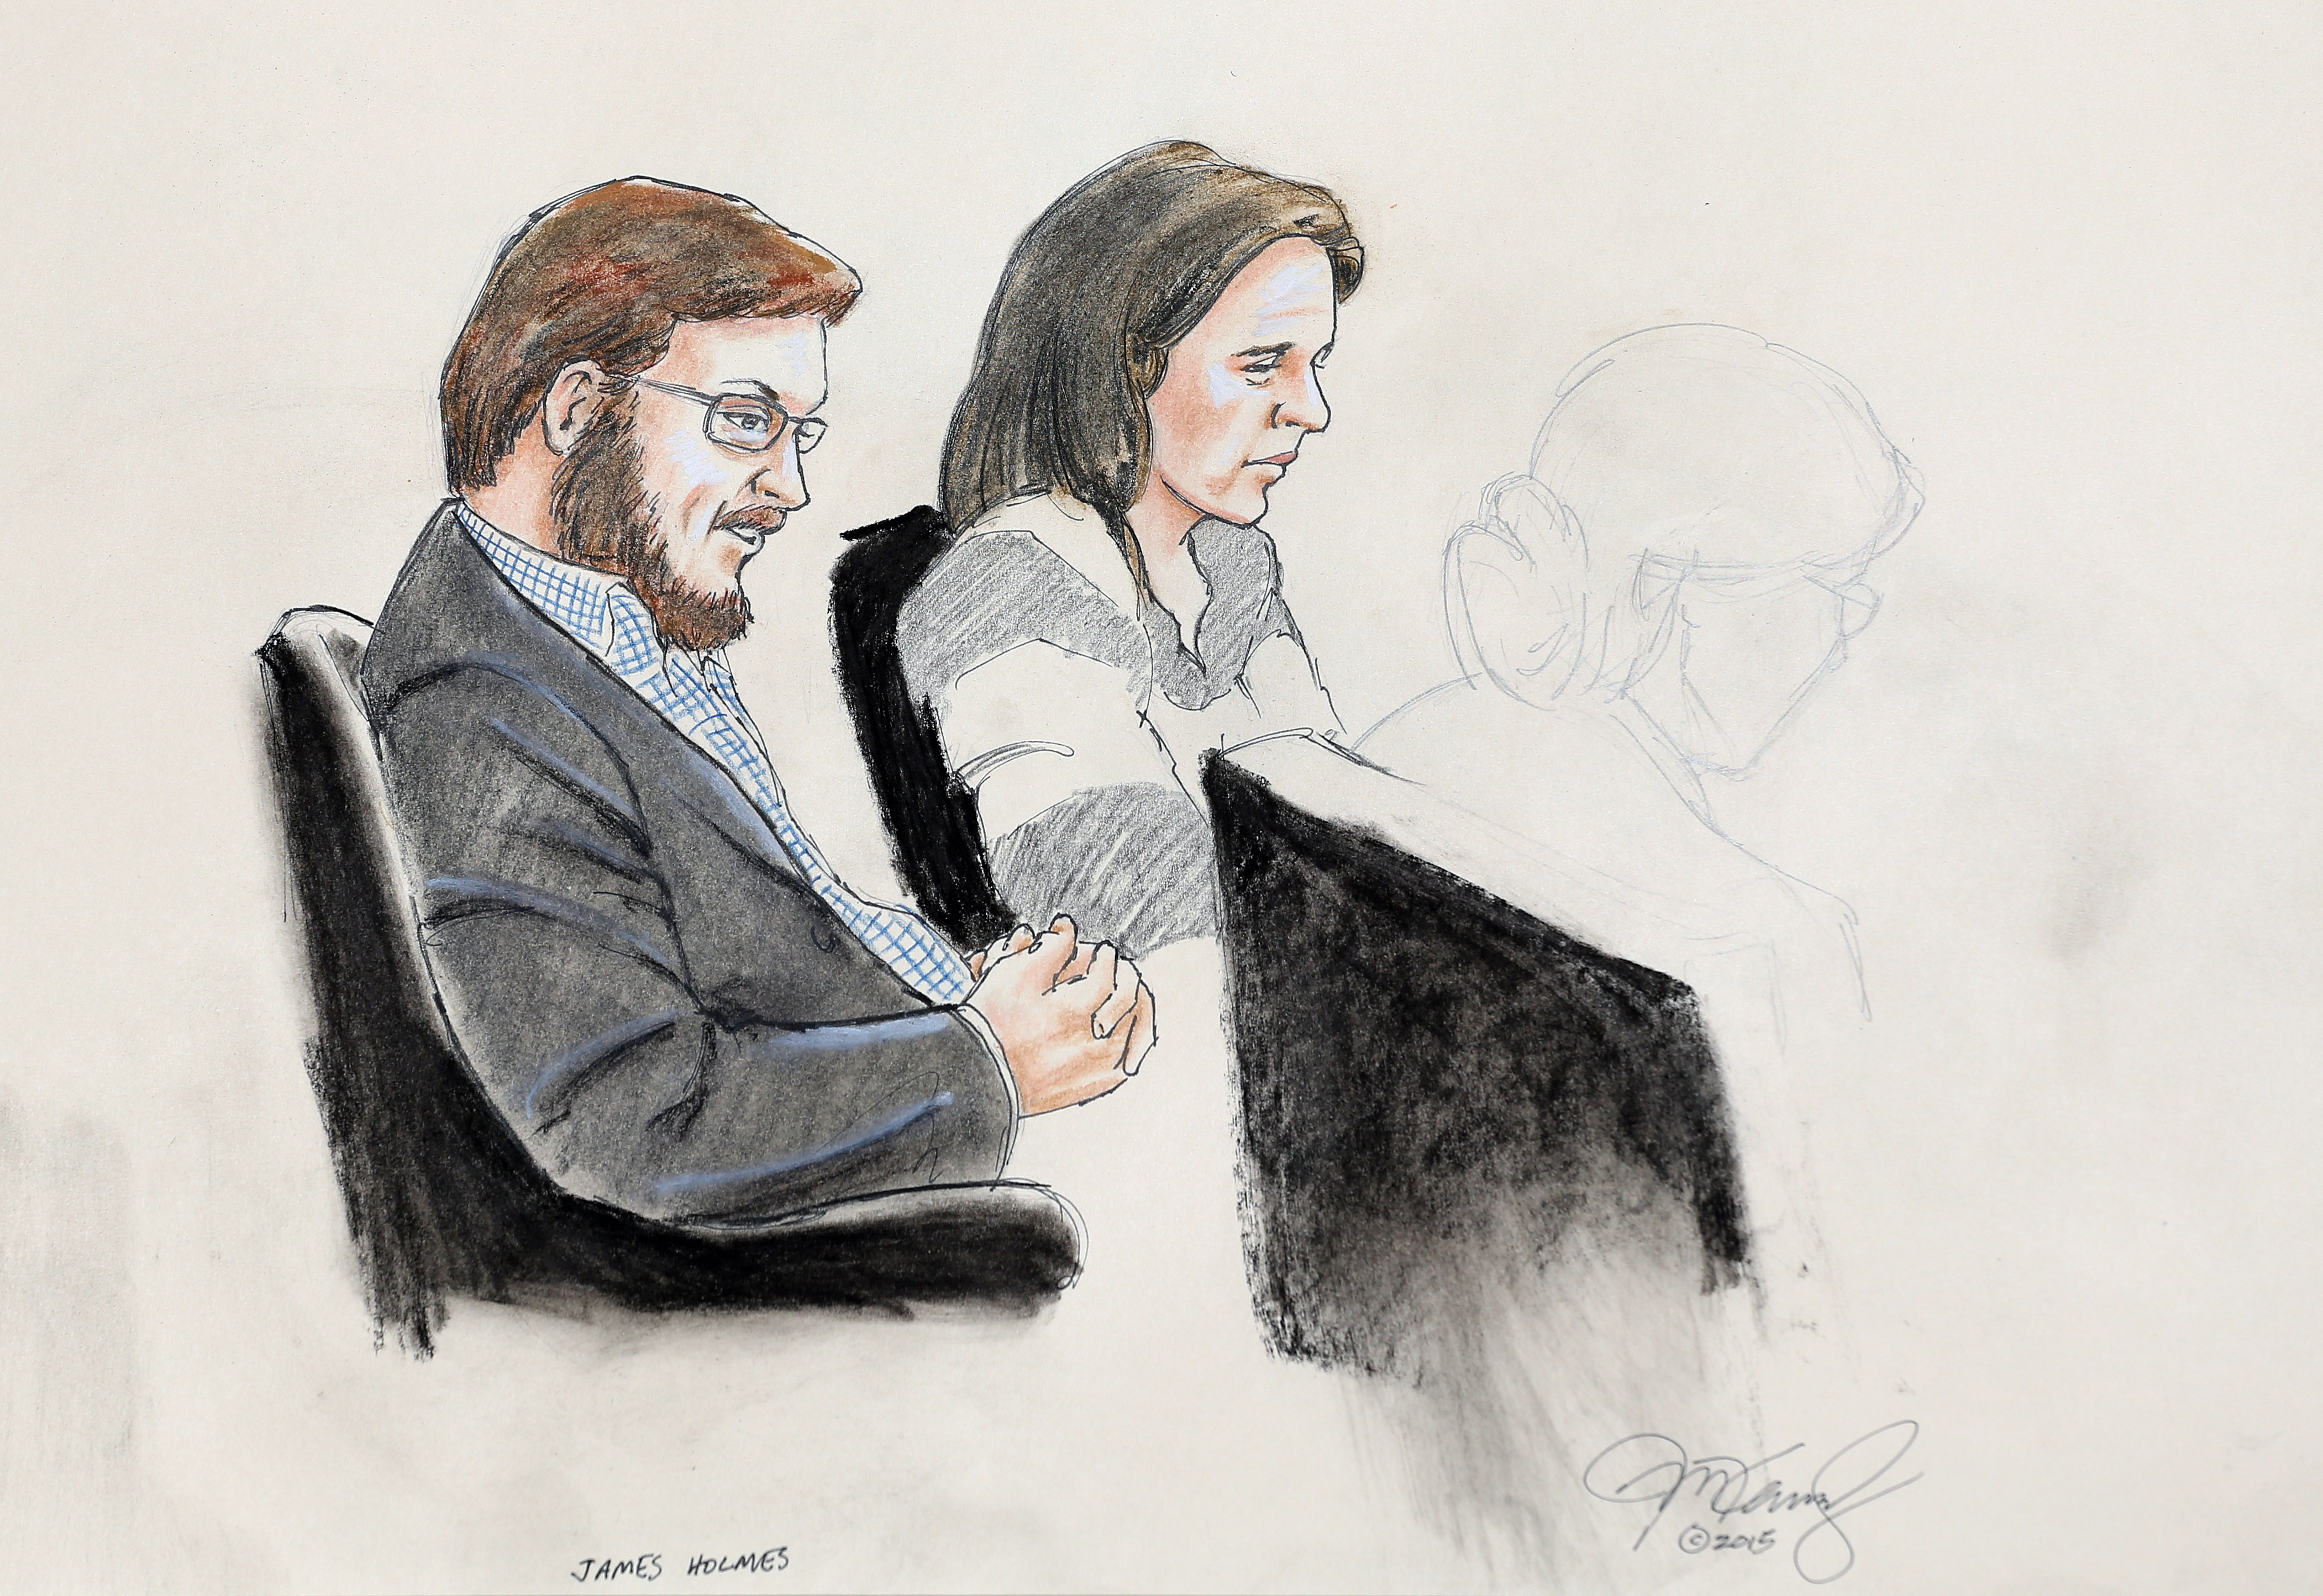 Questions Of Insanity Death At Heart Of Aurora Theater Shooting Trial Colorado Public Radio